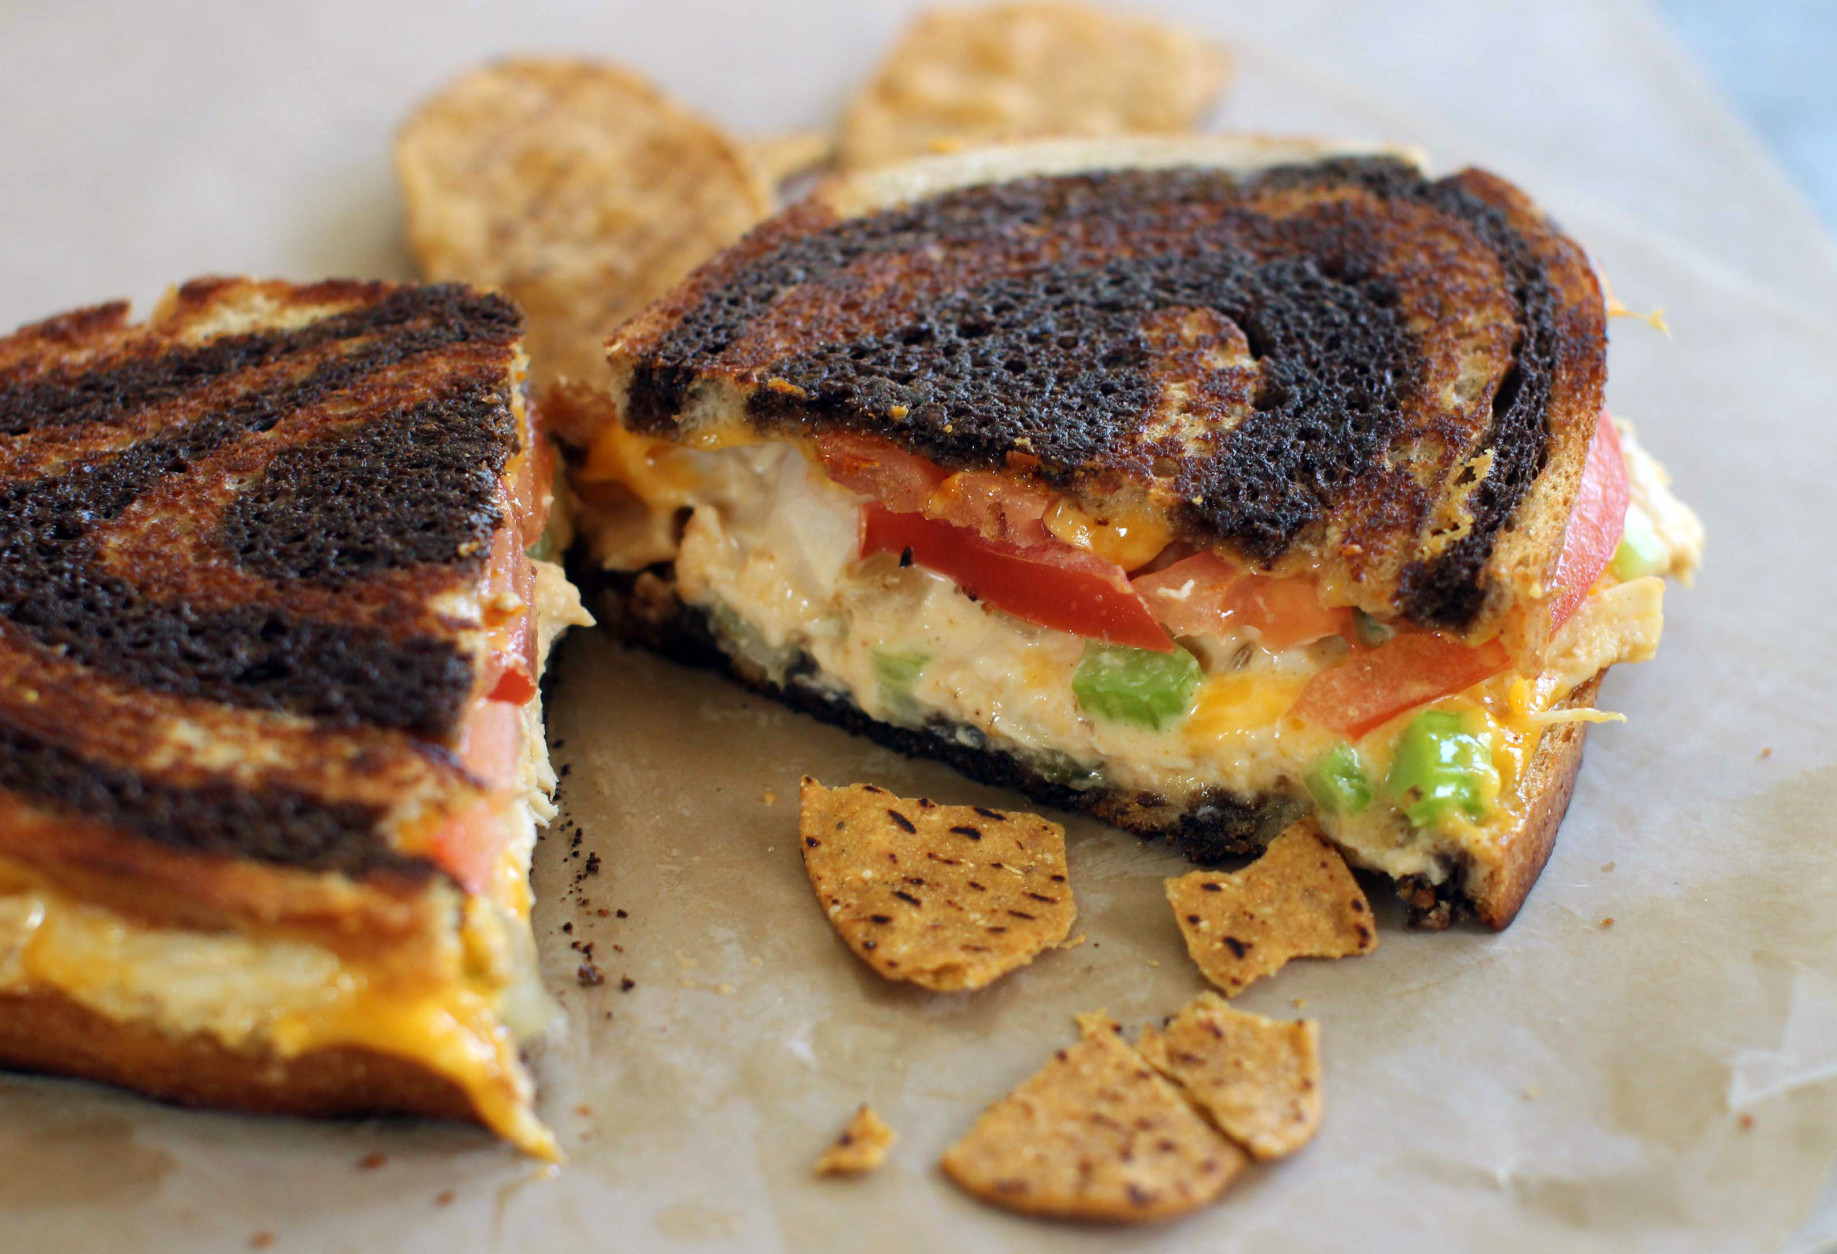 This photo taken June 22, 2015, shows griddled chicken salad sandwich on rye in Concord, NH. This dish is from a recipe by J.M. Hirsch. (AP Photo/Matthew Mead)